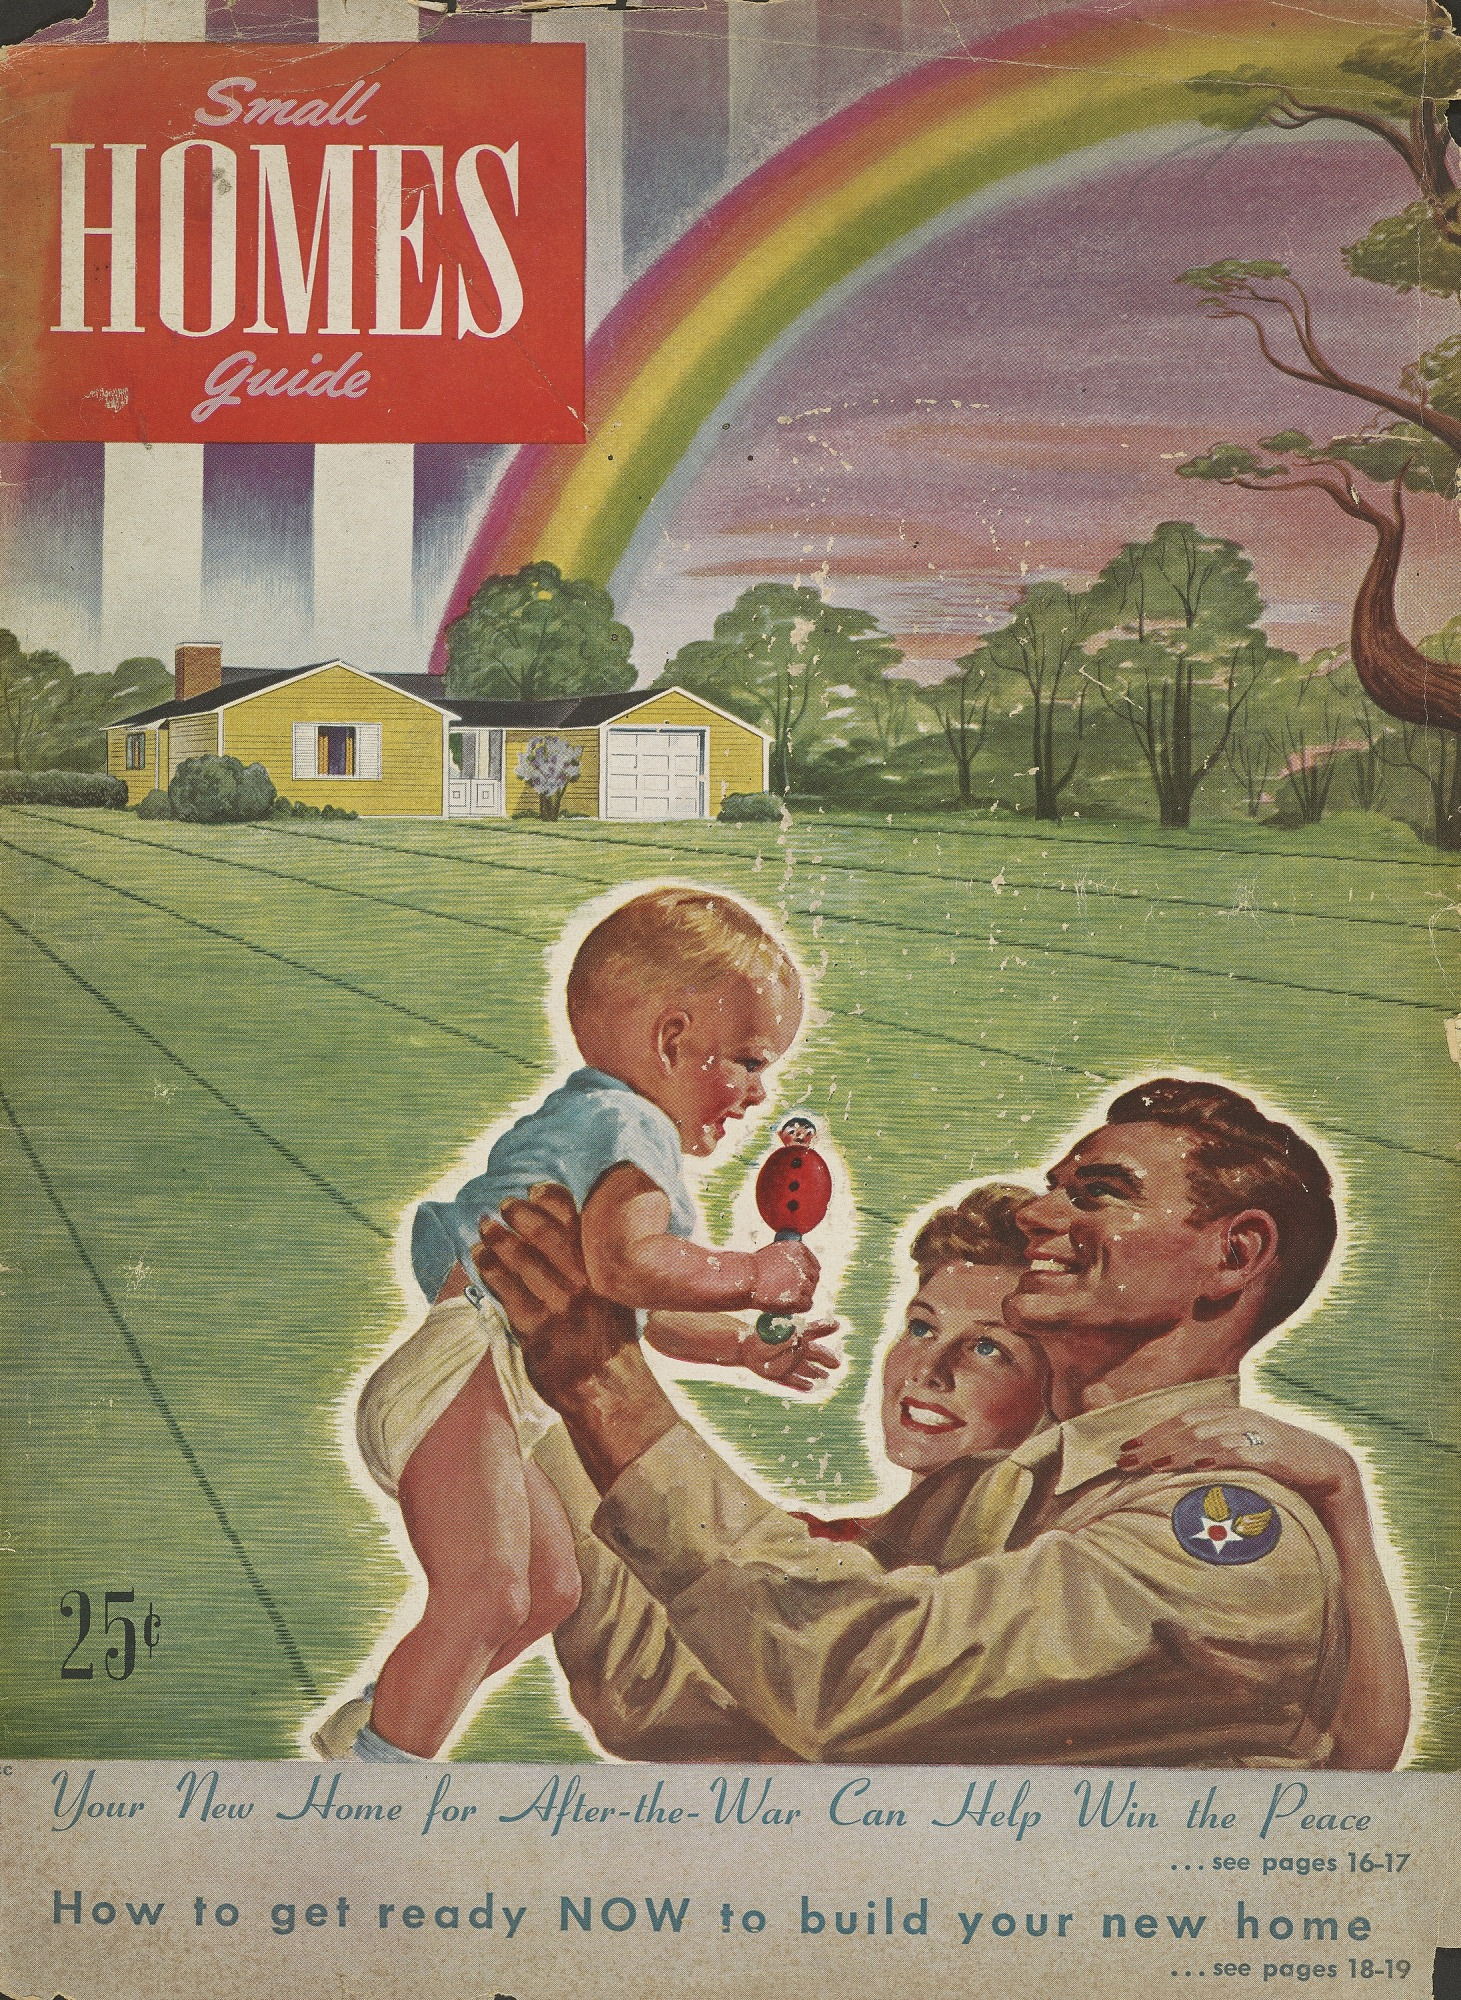 Small Homes Guide, New York, 1944